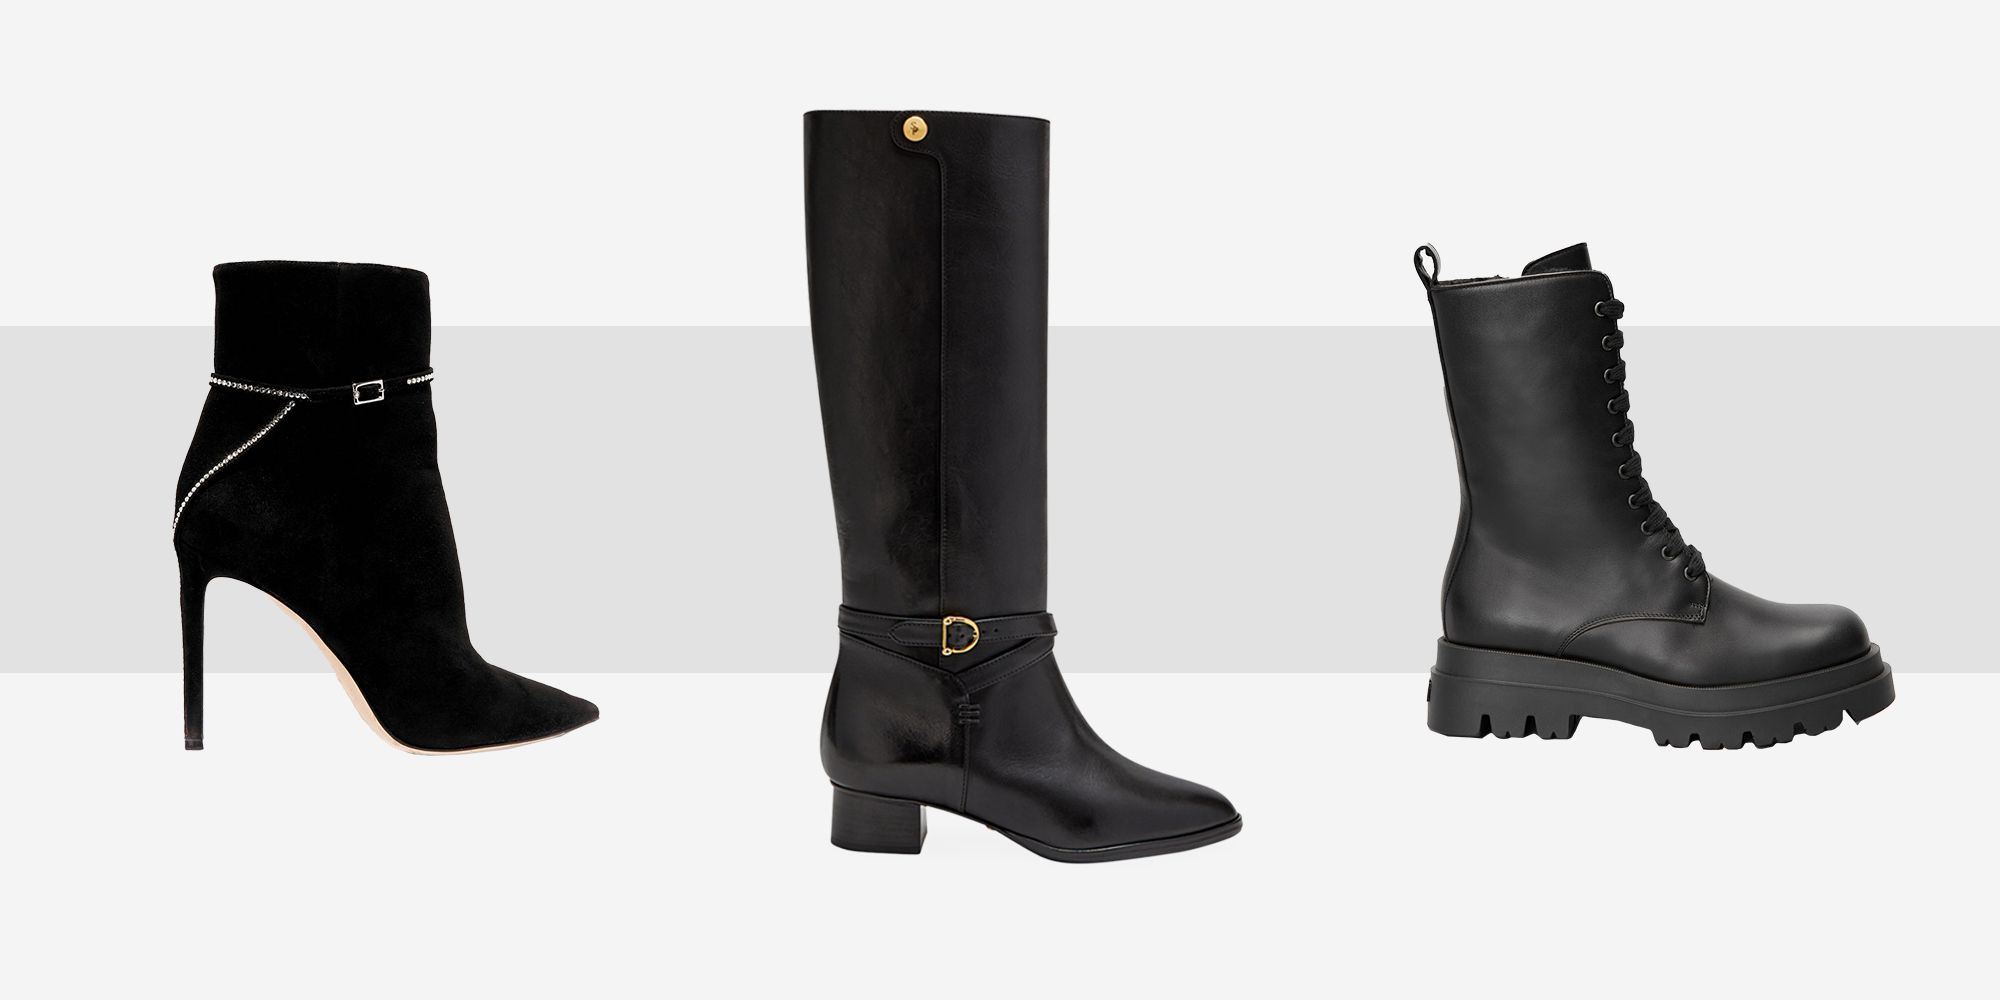 11 Best Black Boots for Women - Stylish